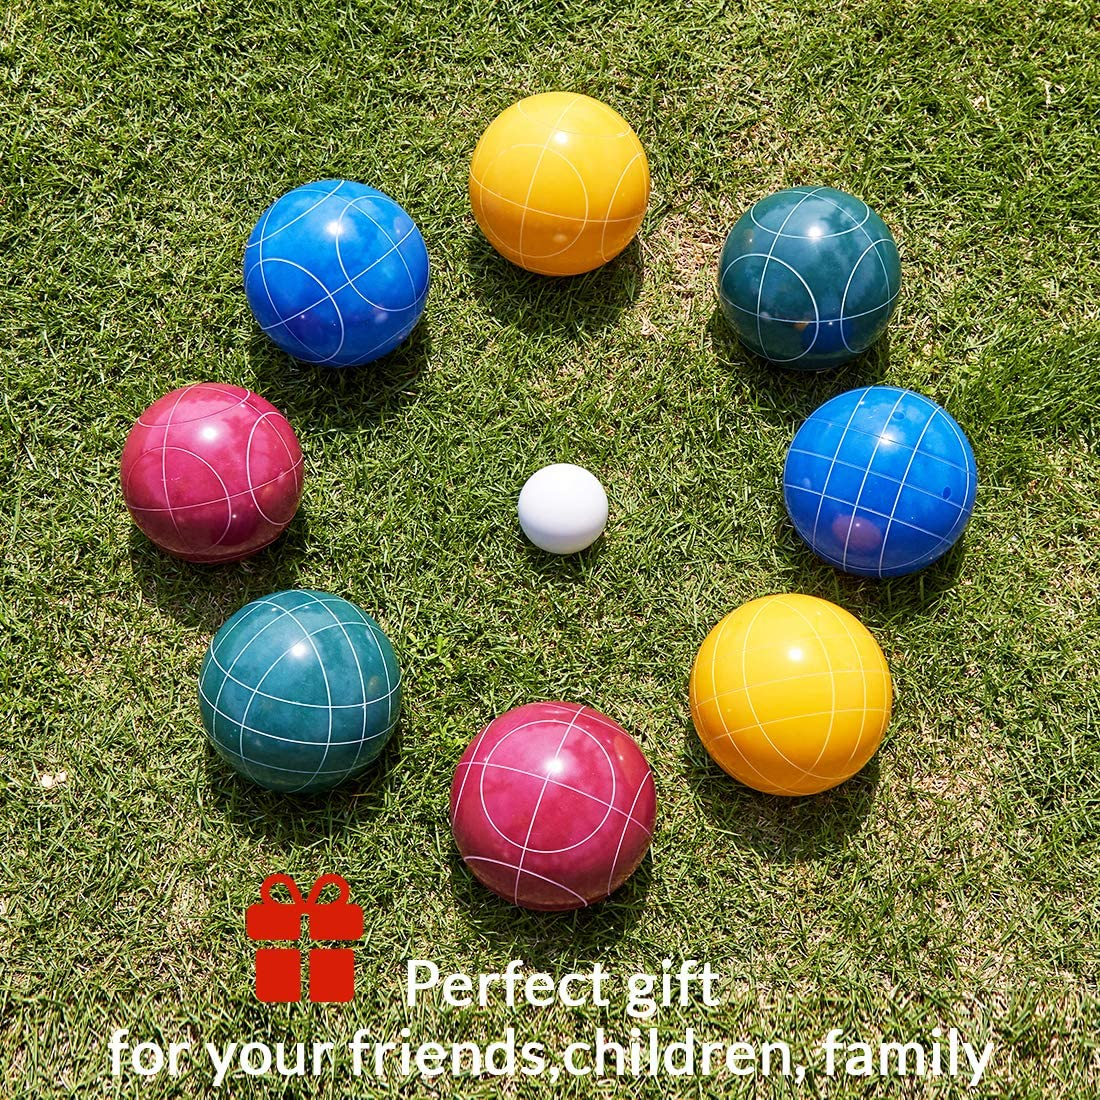 Single Blue, 90mm ApudArmis Bocce Ball Replacement with Straight Line Pattern Outdoor Family Bocce Game for Backyard//Lawn//Beach